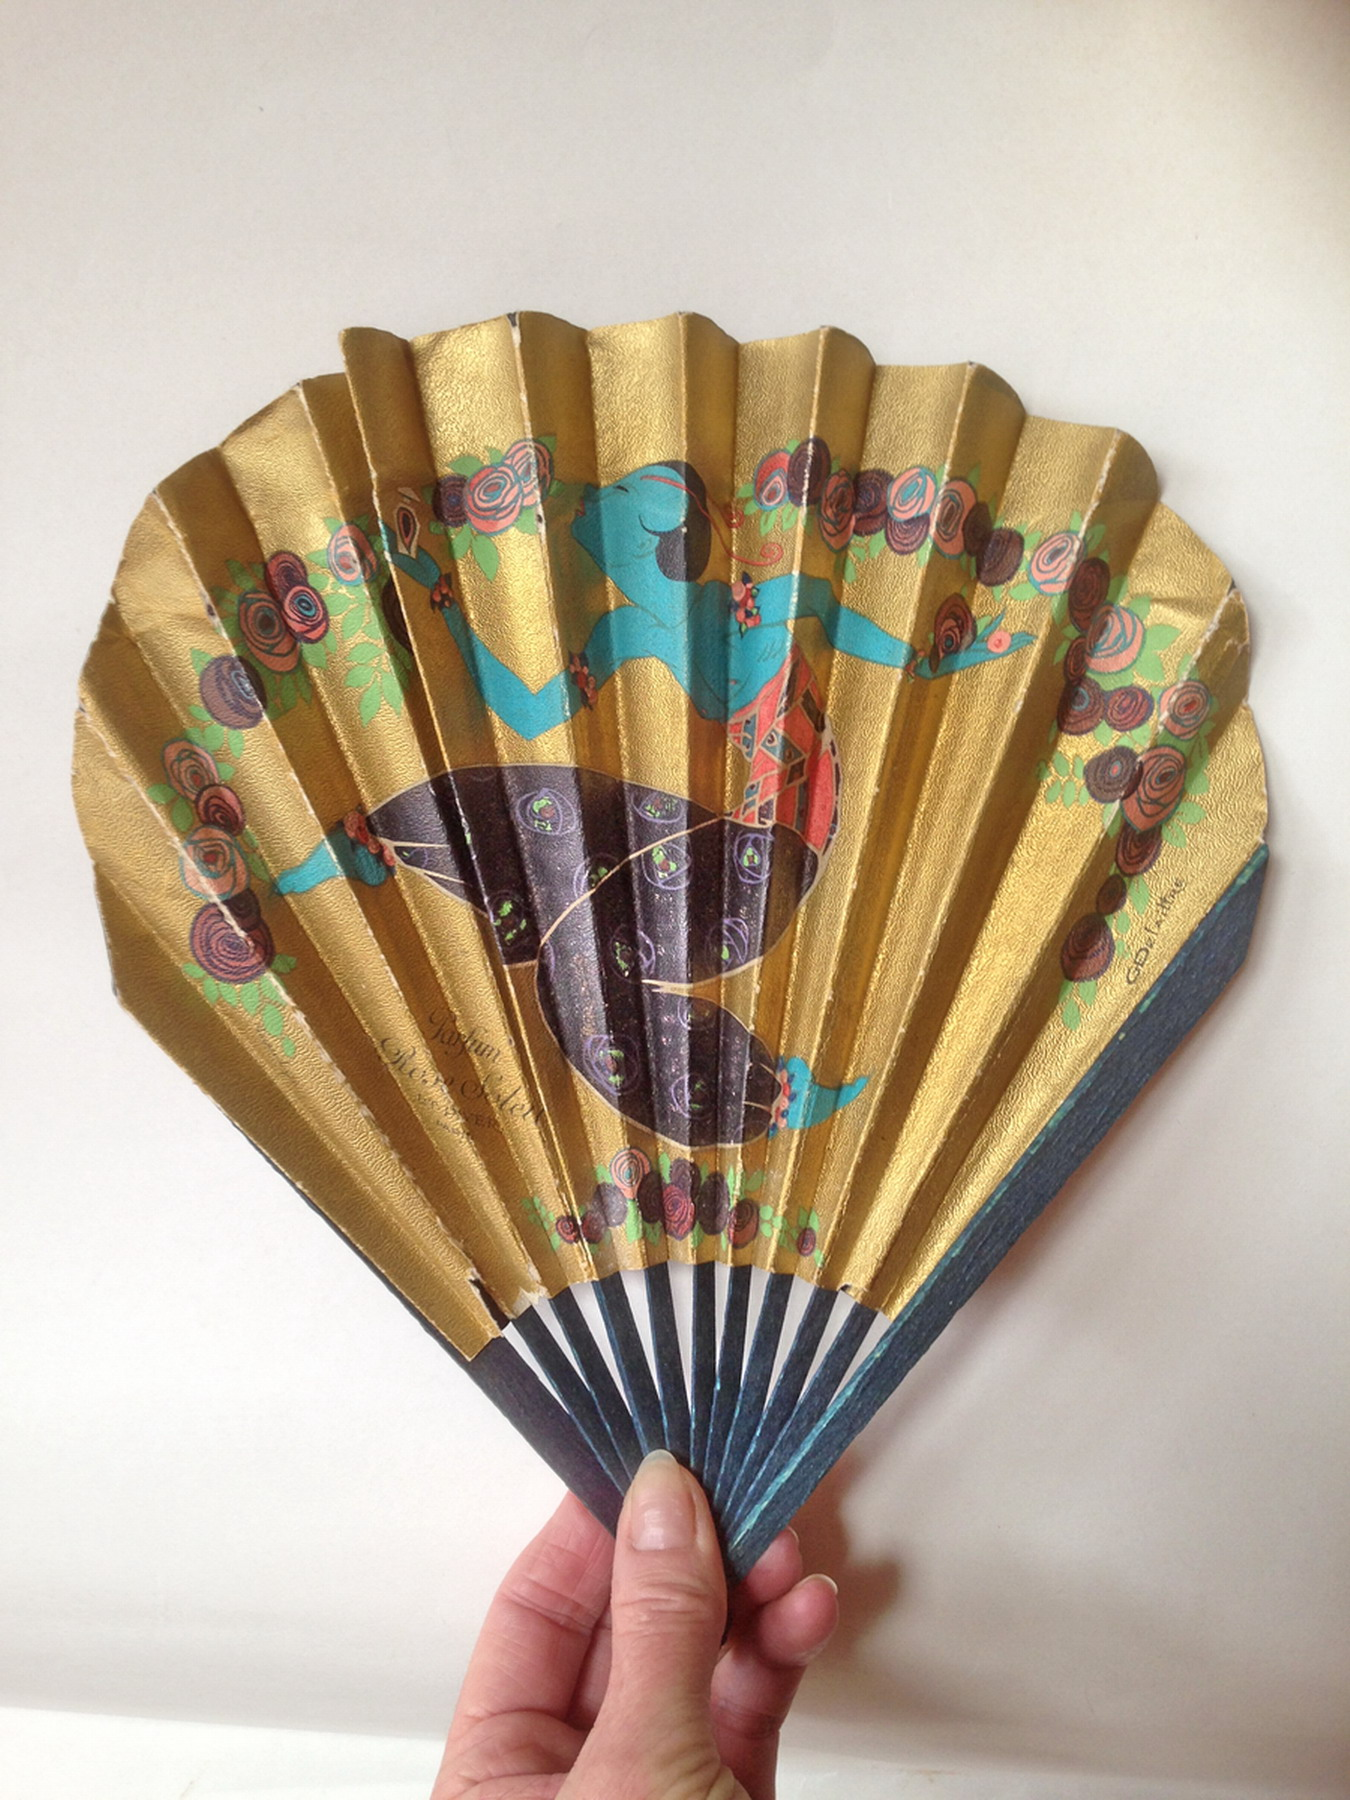 L T Piver - Art Deco Fan